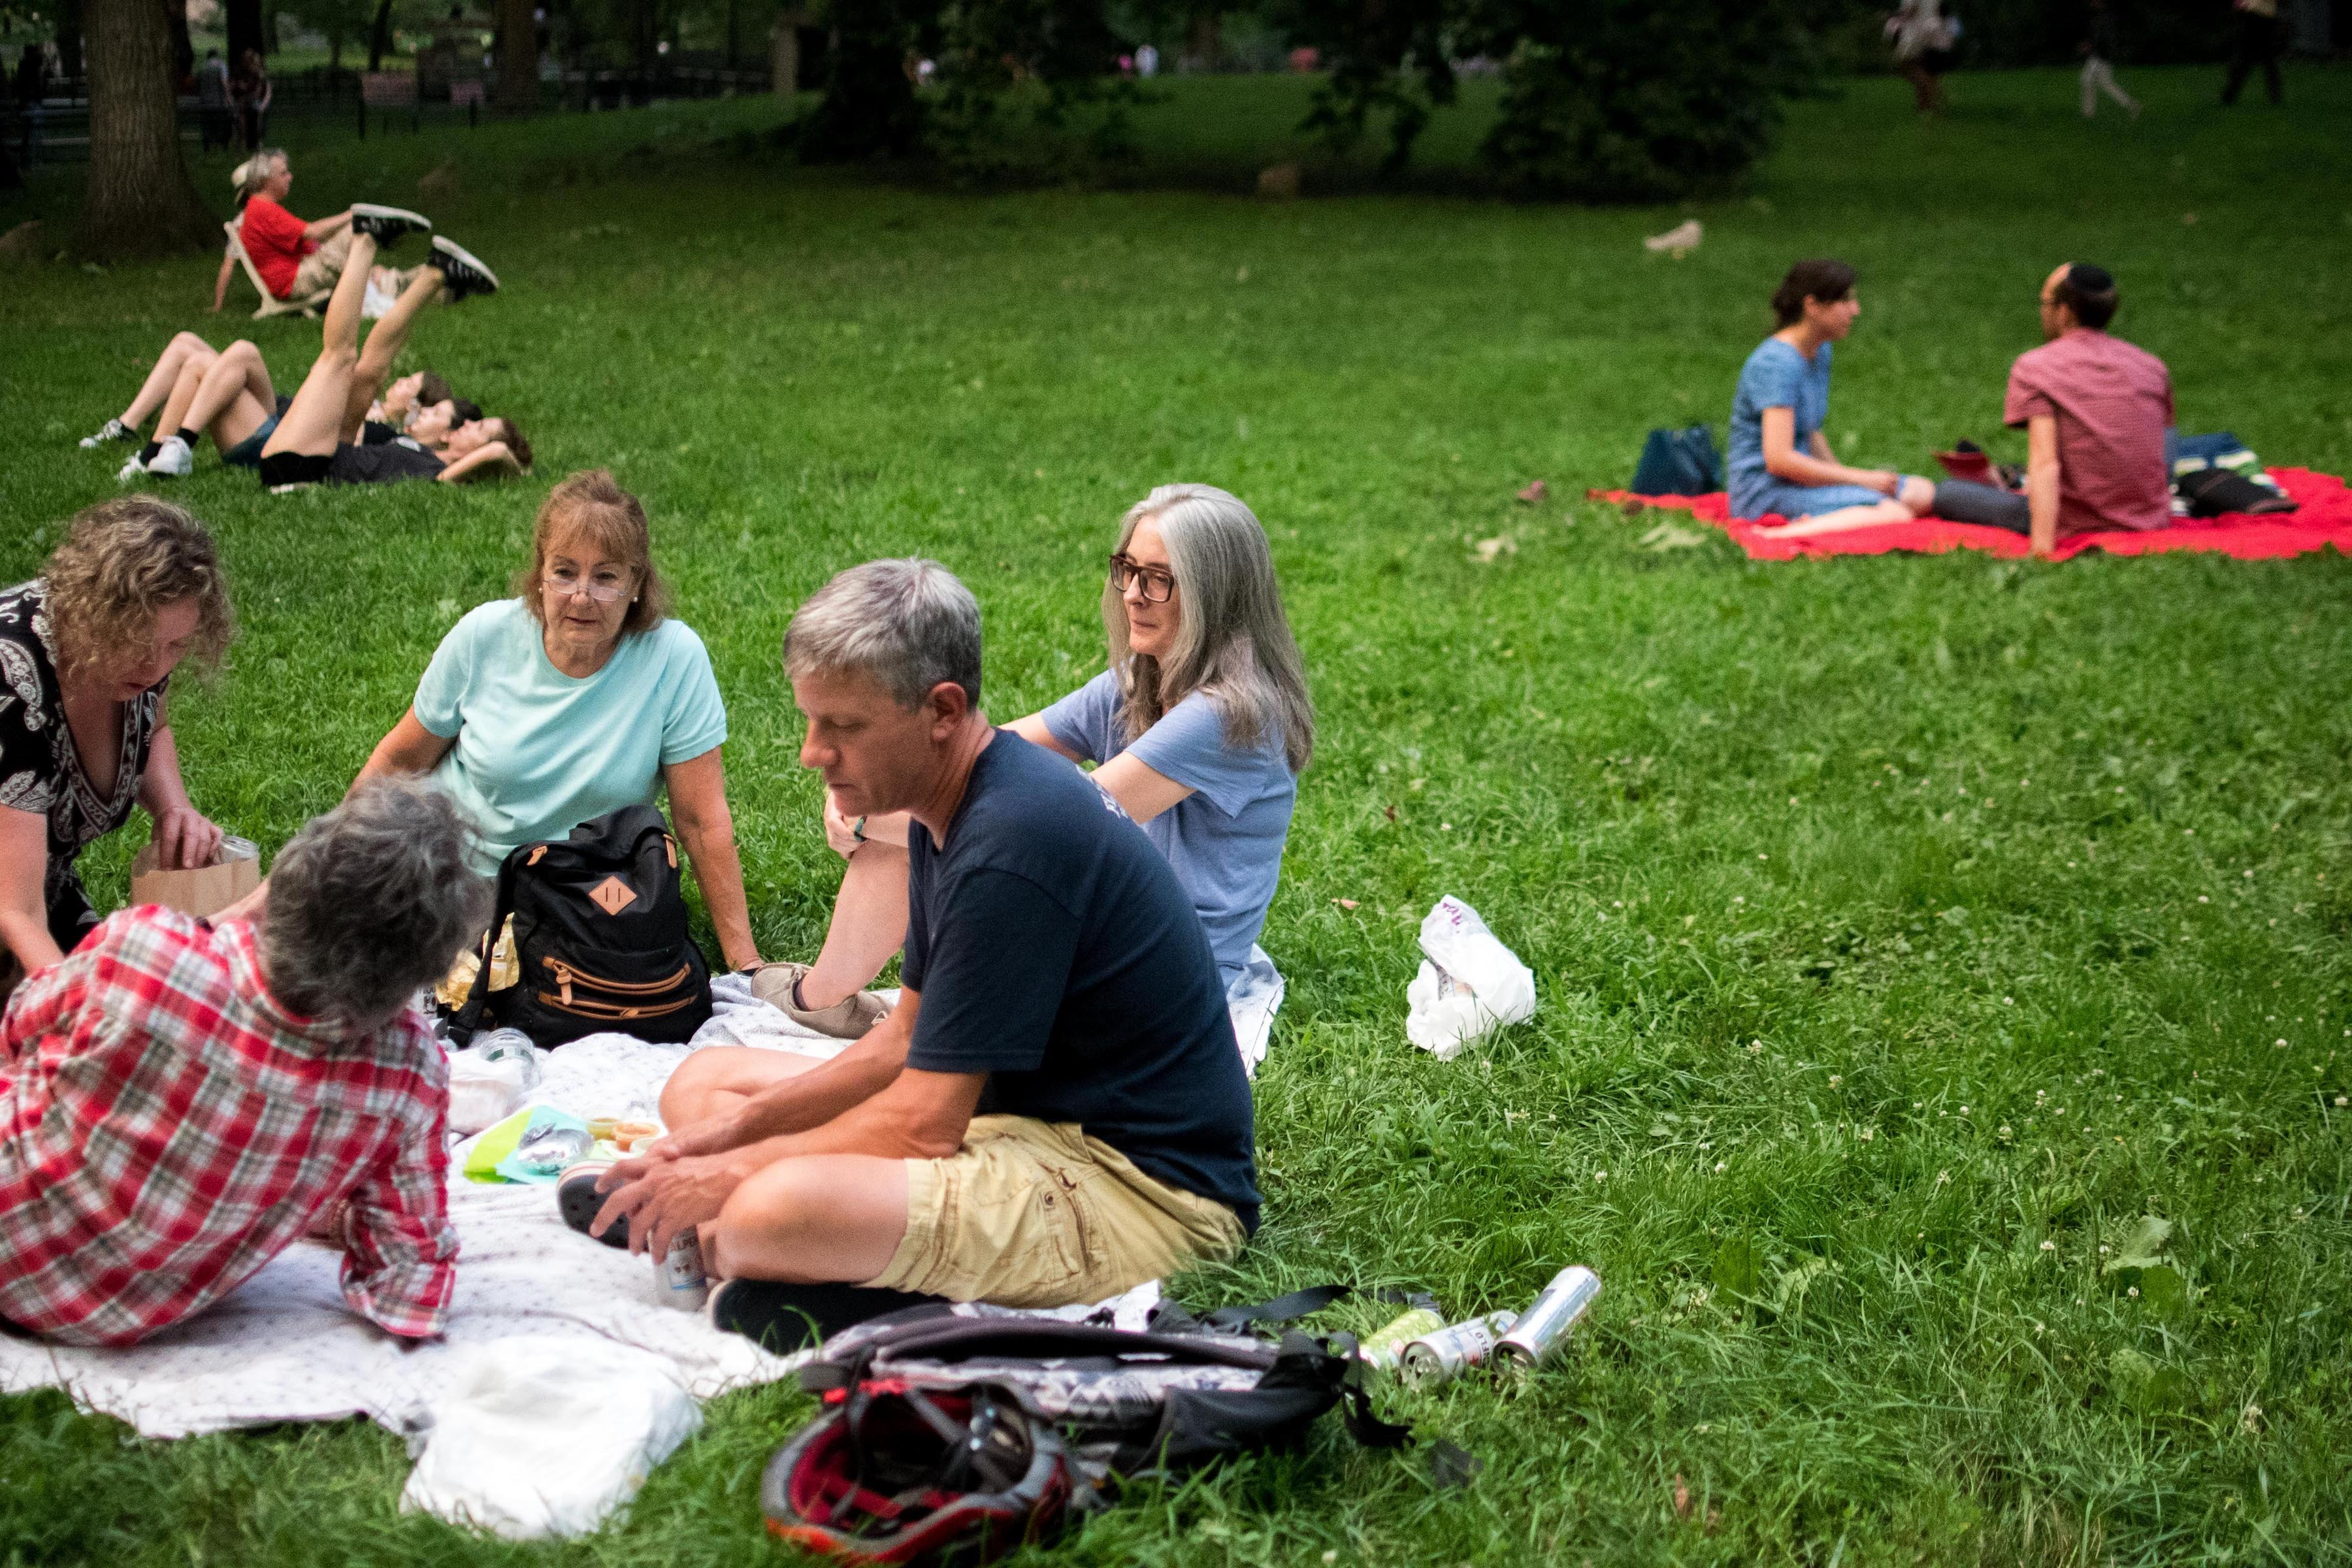 Group of men and women having a picnic in Central Park.